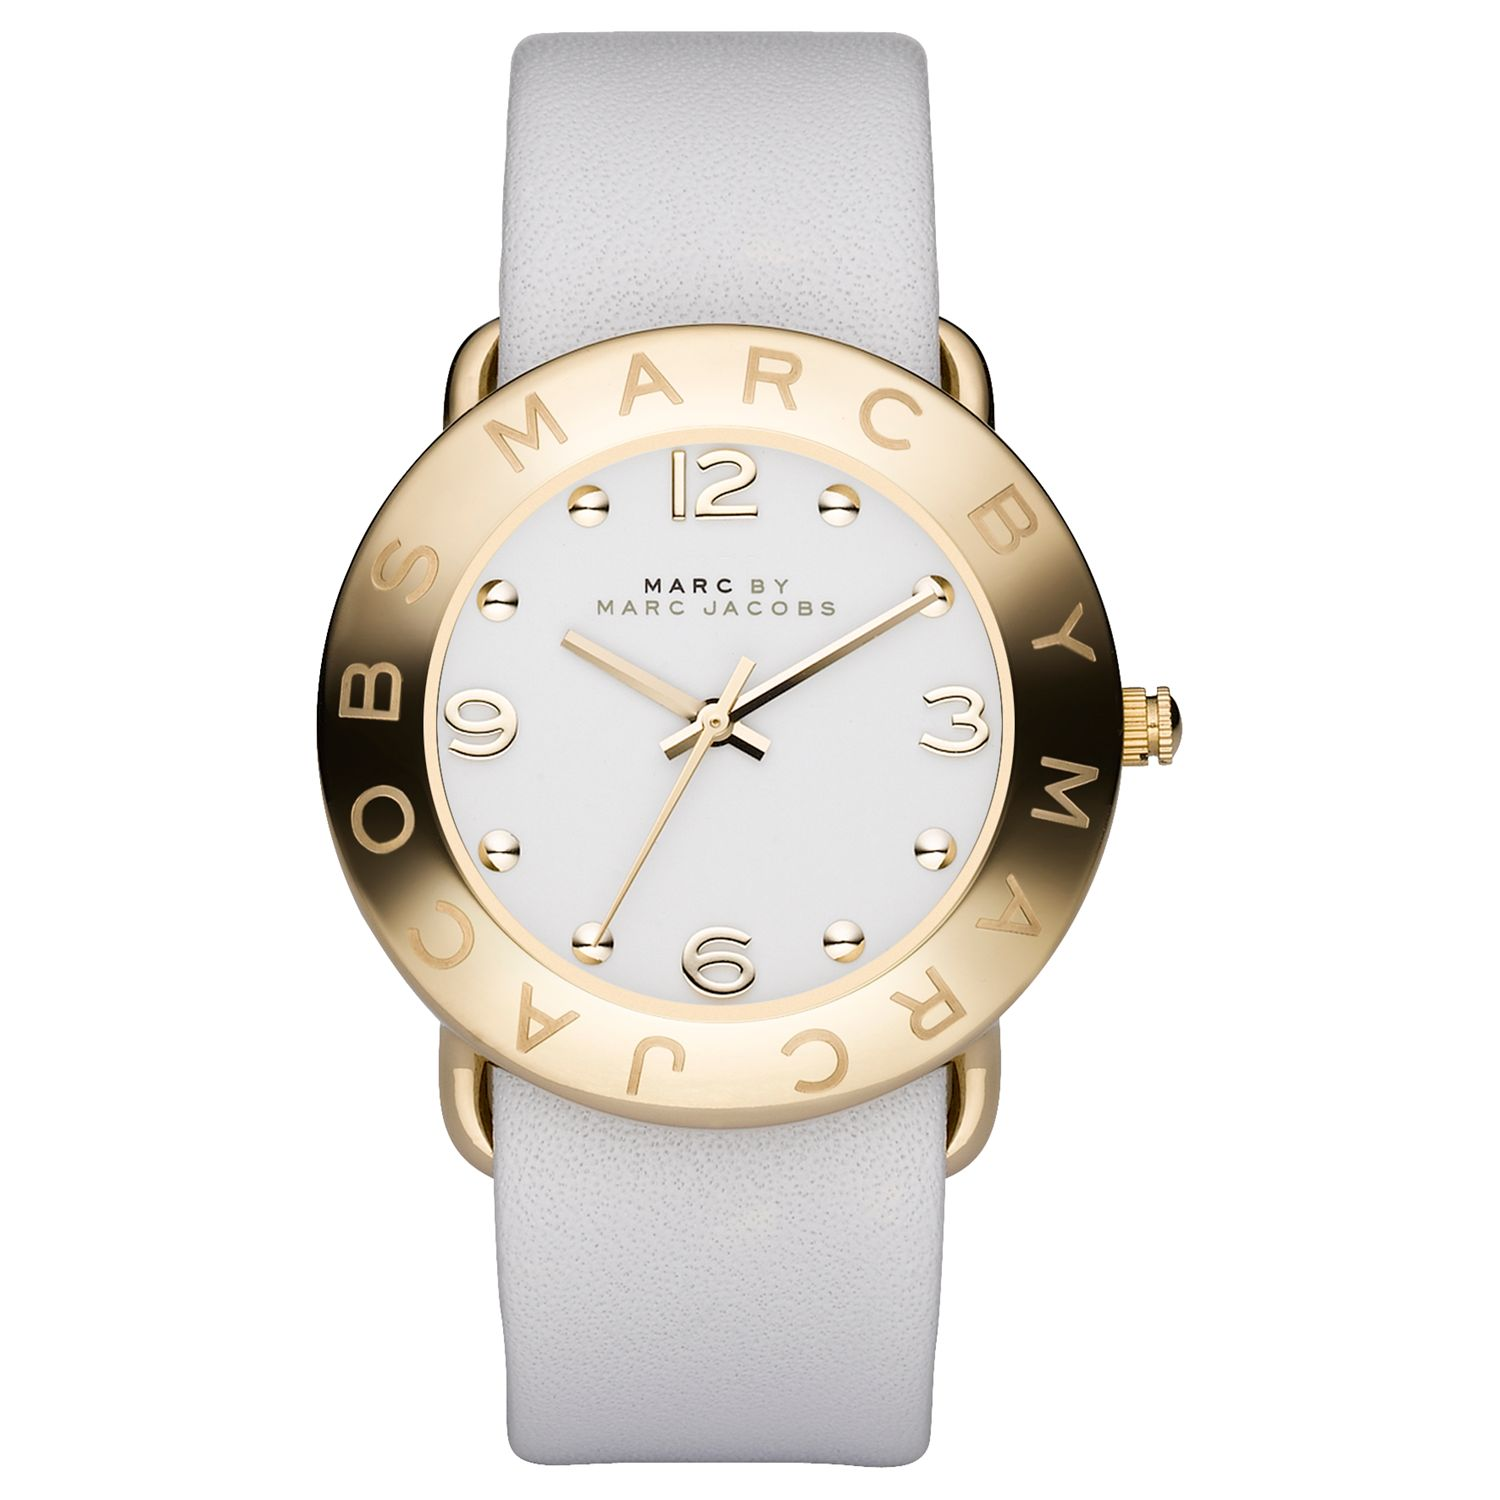 Marc by Marc Jacobs MBM1150 Women